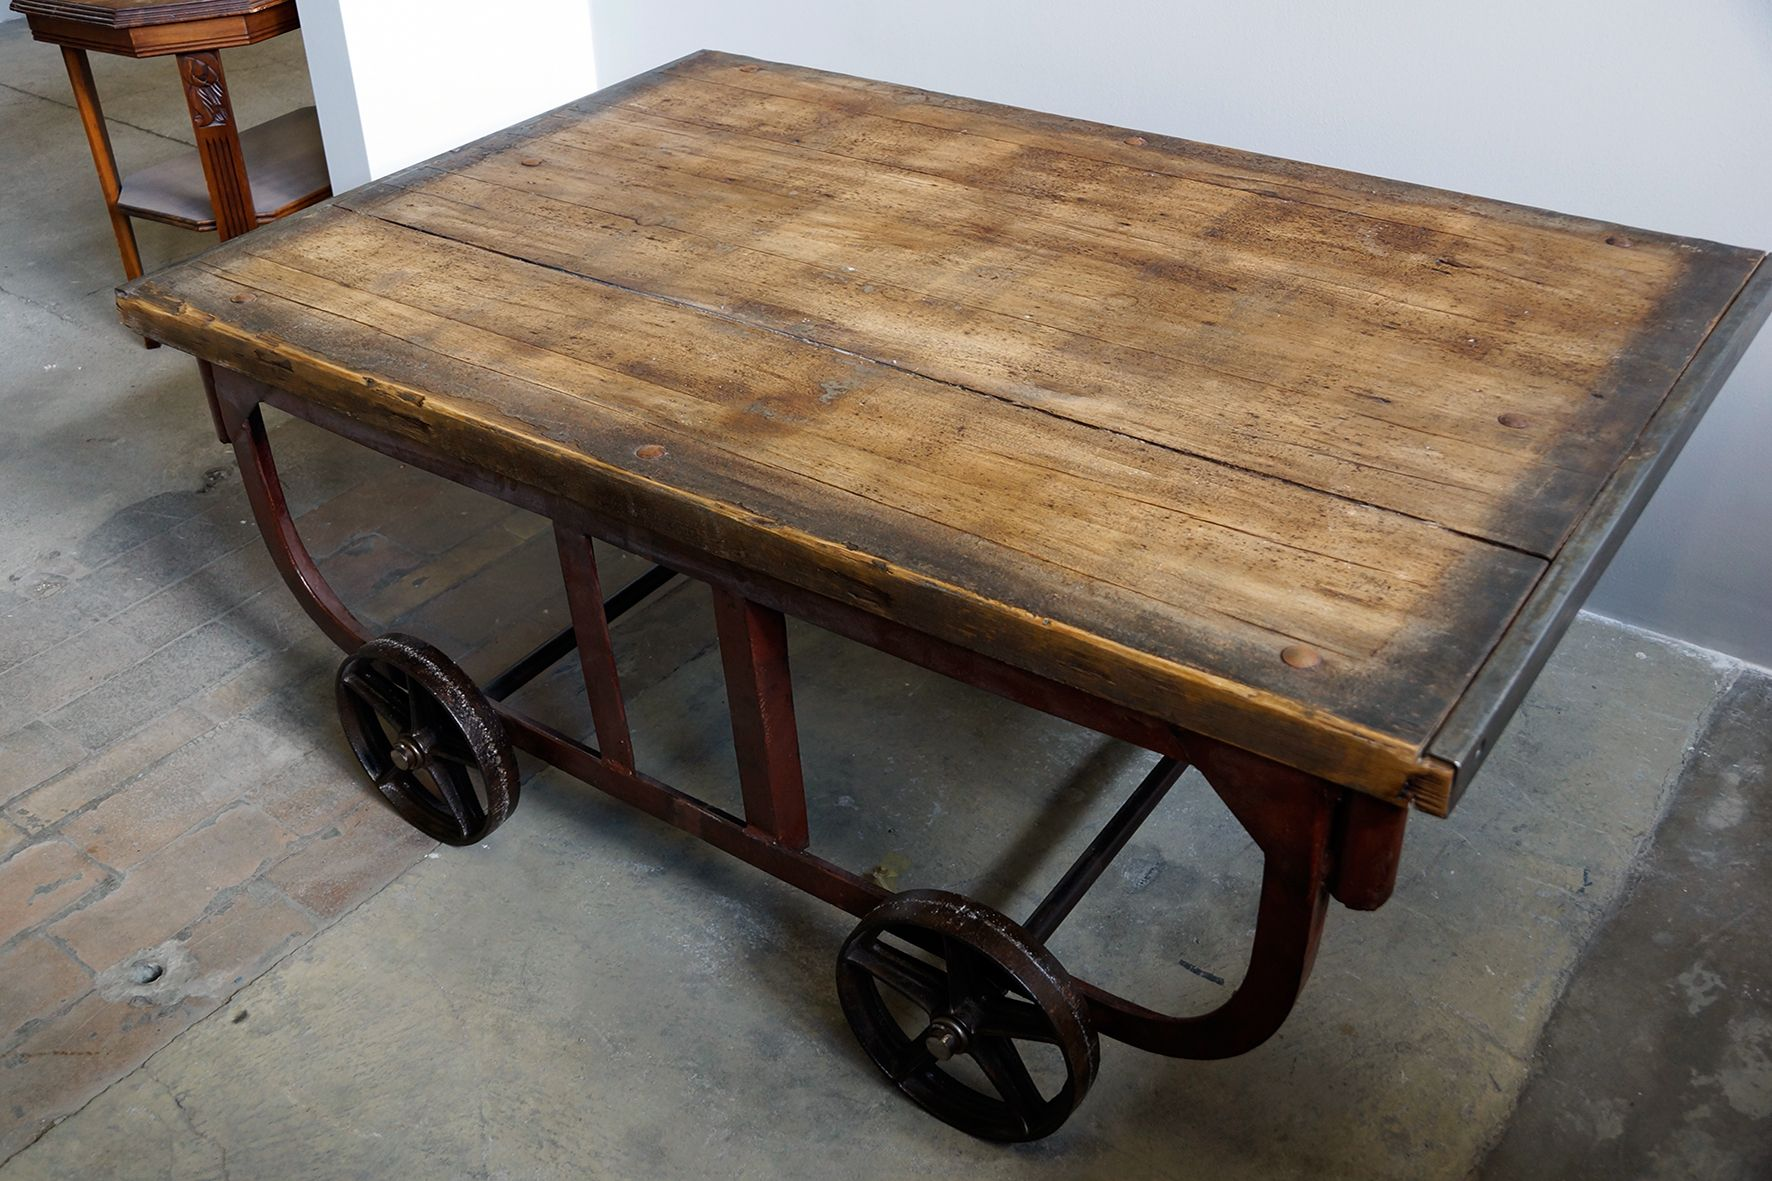 Grande table basse vintage industrielle en vente sur pamono for Grande table basse industrielle